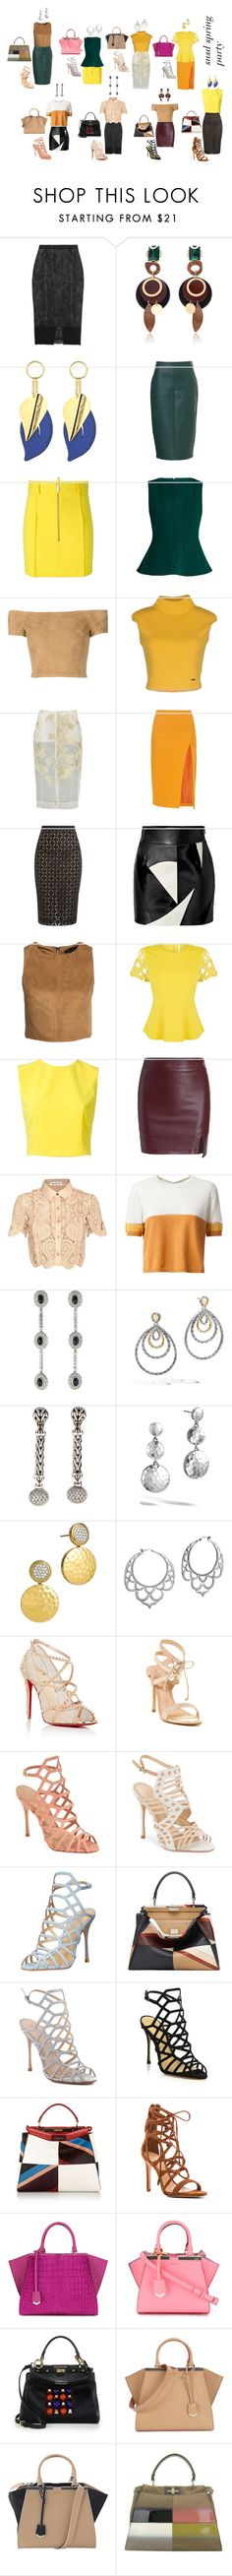 """""""spring party"""" by yusufbudiman on Polyvore featuring Roland Mouret, Marni, Dsquared2, Alice + Olivia, By Sun, Altuzarra, FAUSTO PUGLISI, New Look, Karen Millen and self-portrait"""